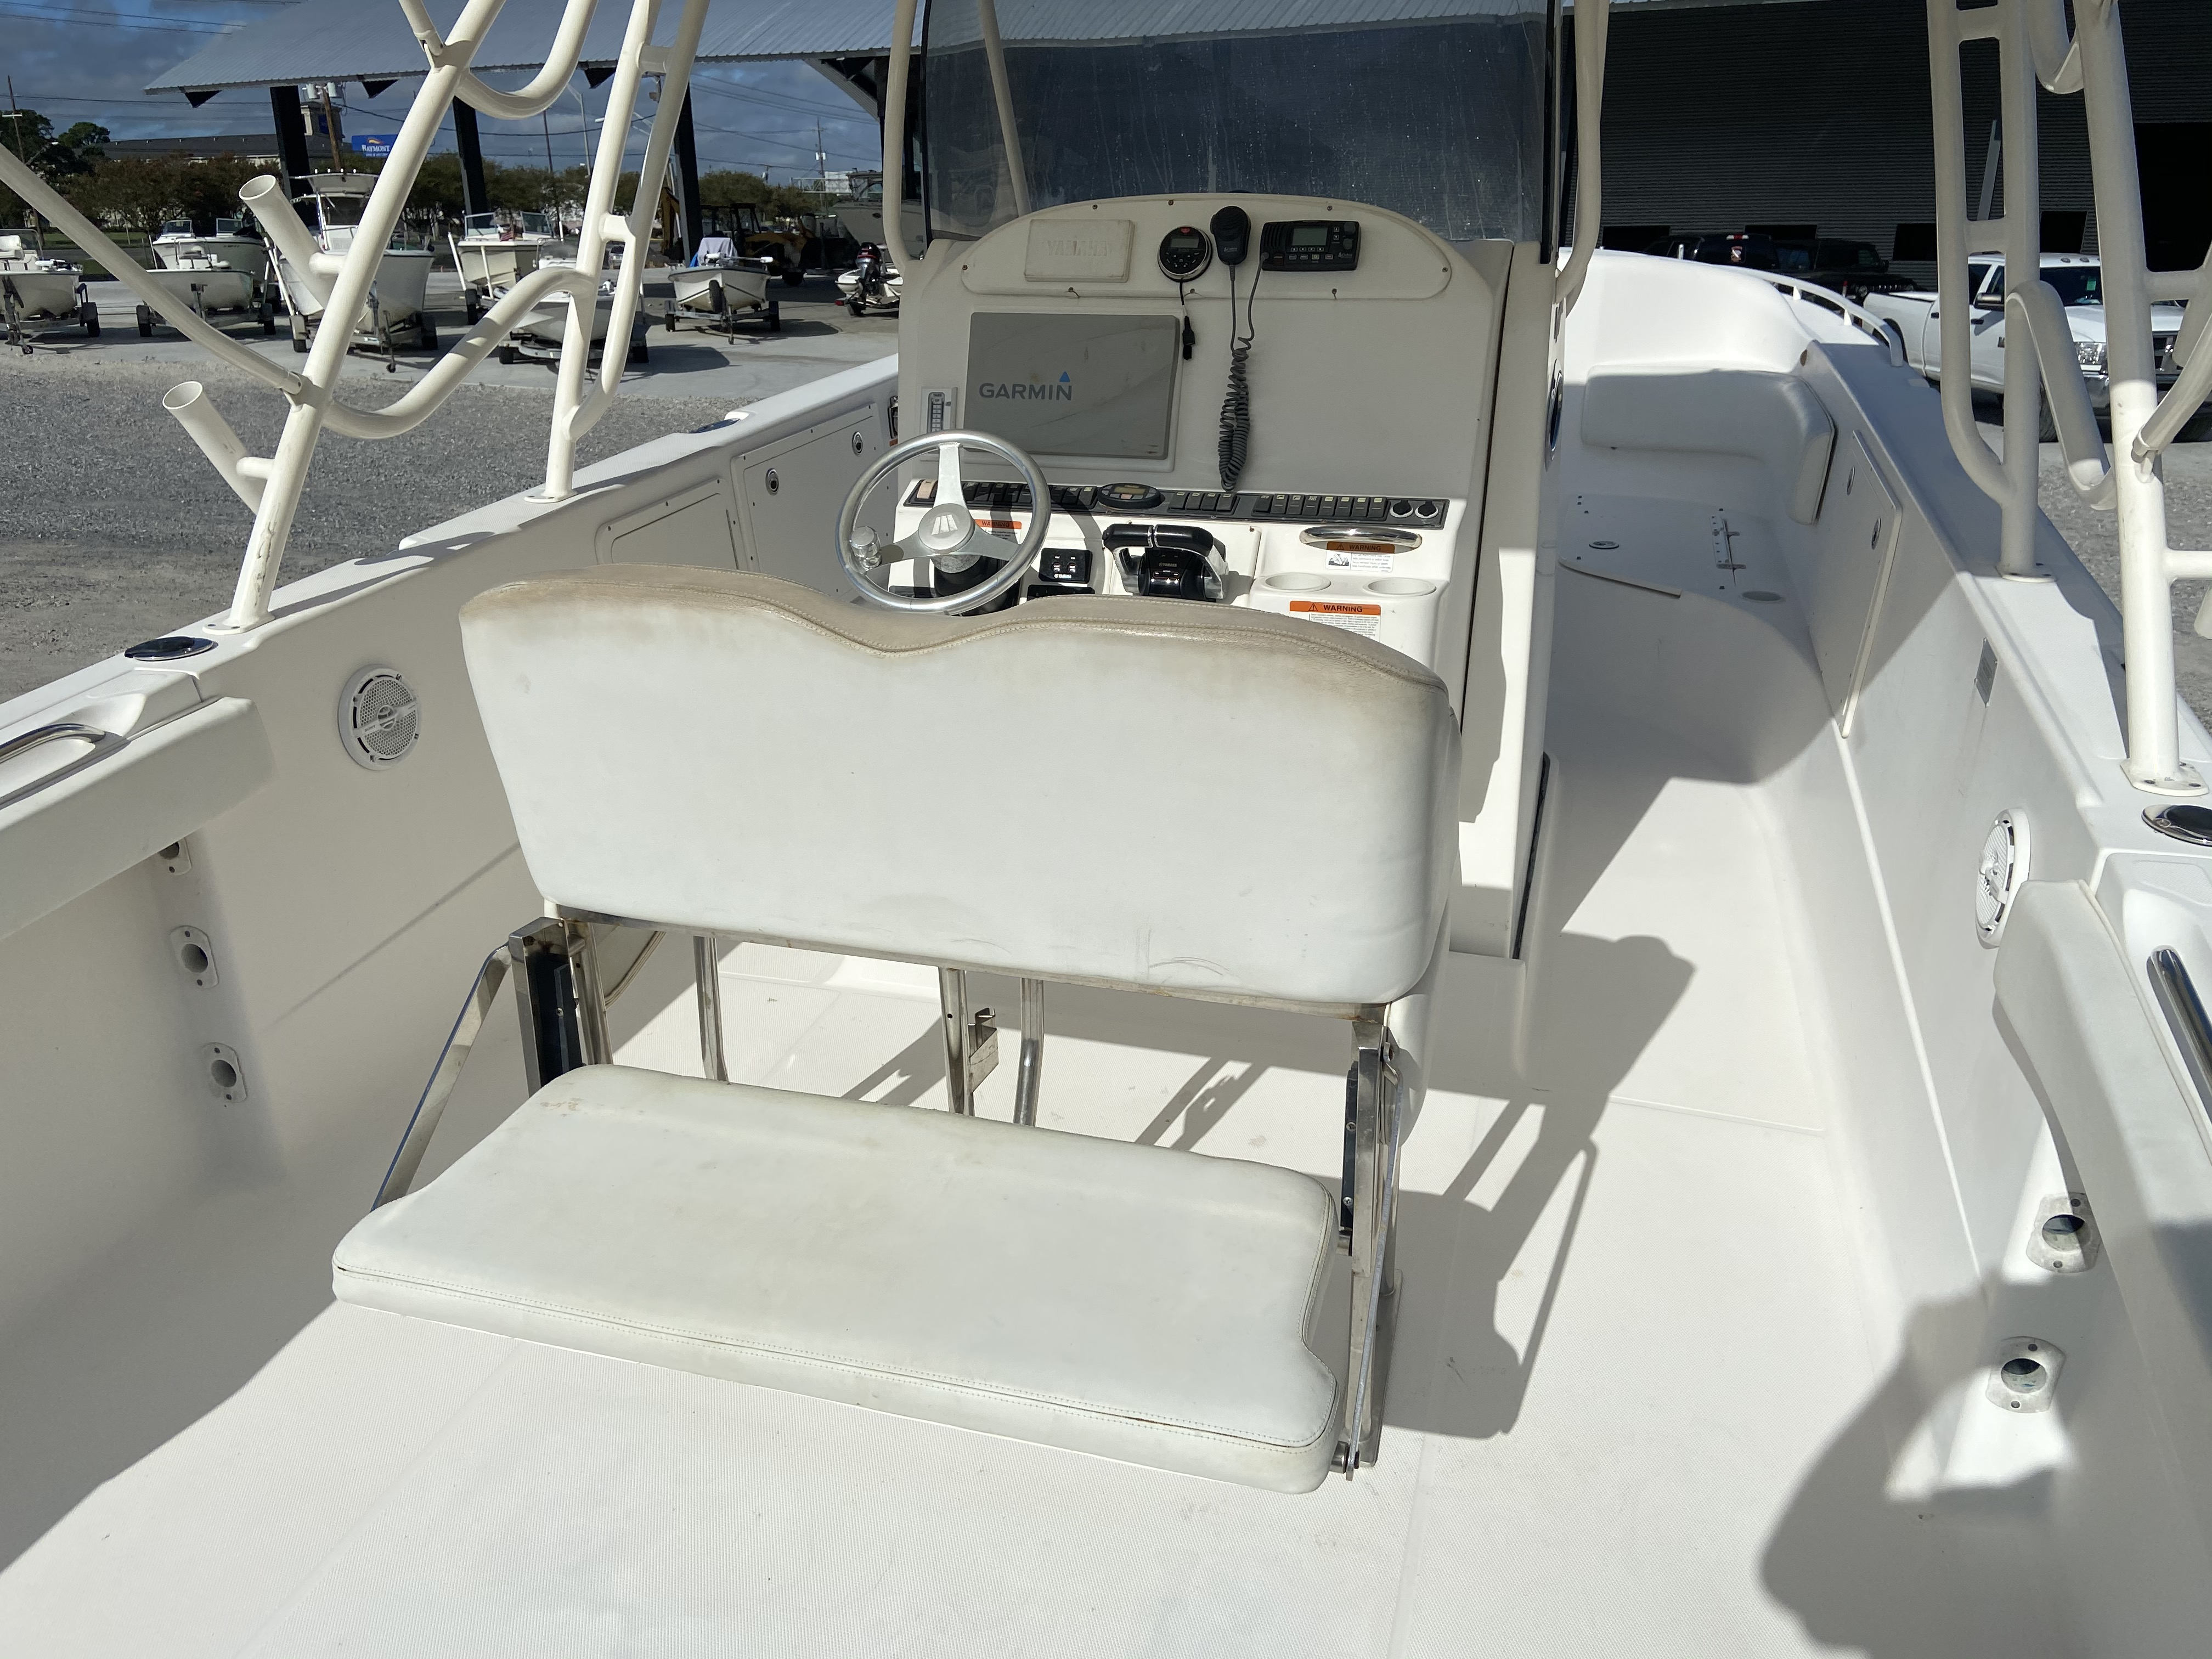 2006 Wellcraft boat for sale, model of the boat is 352 Sport & Image # 13 of 27